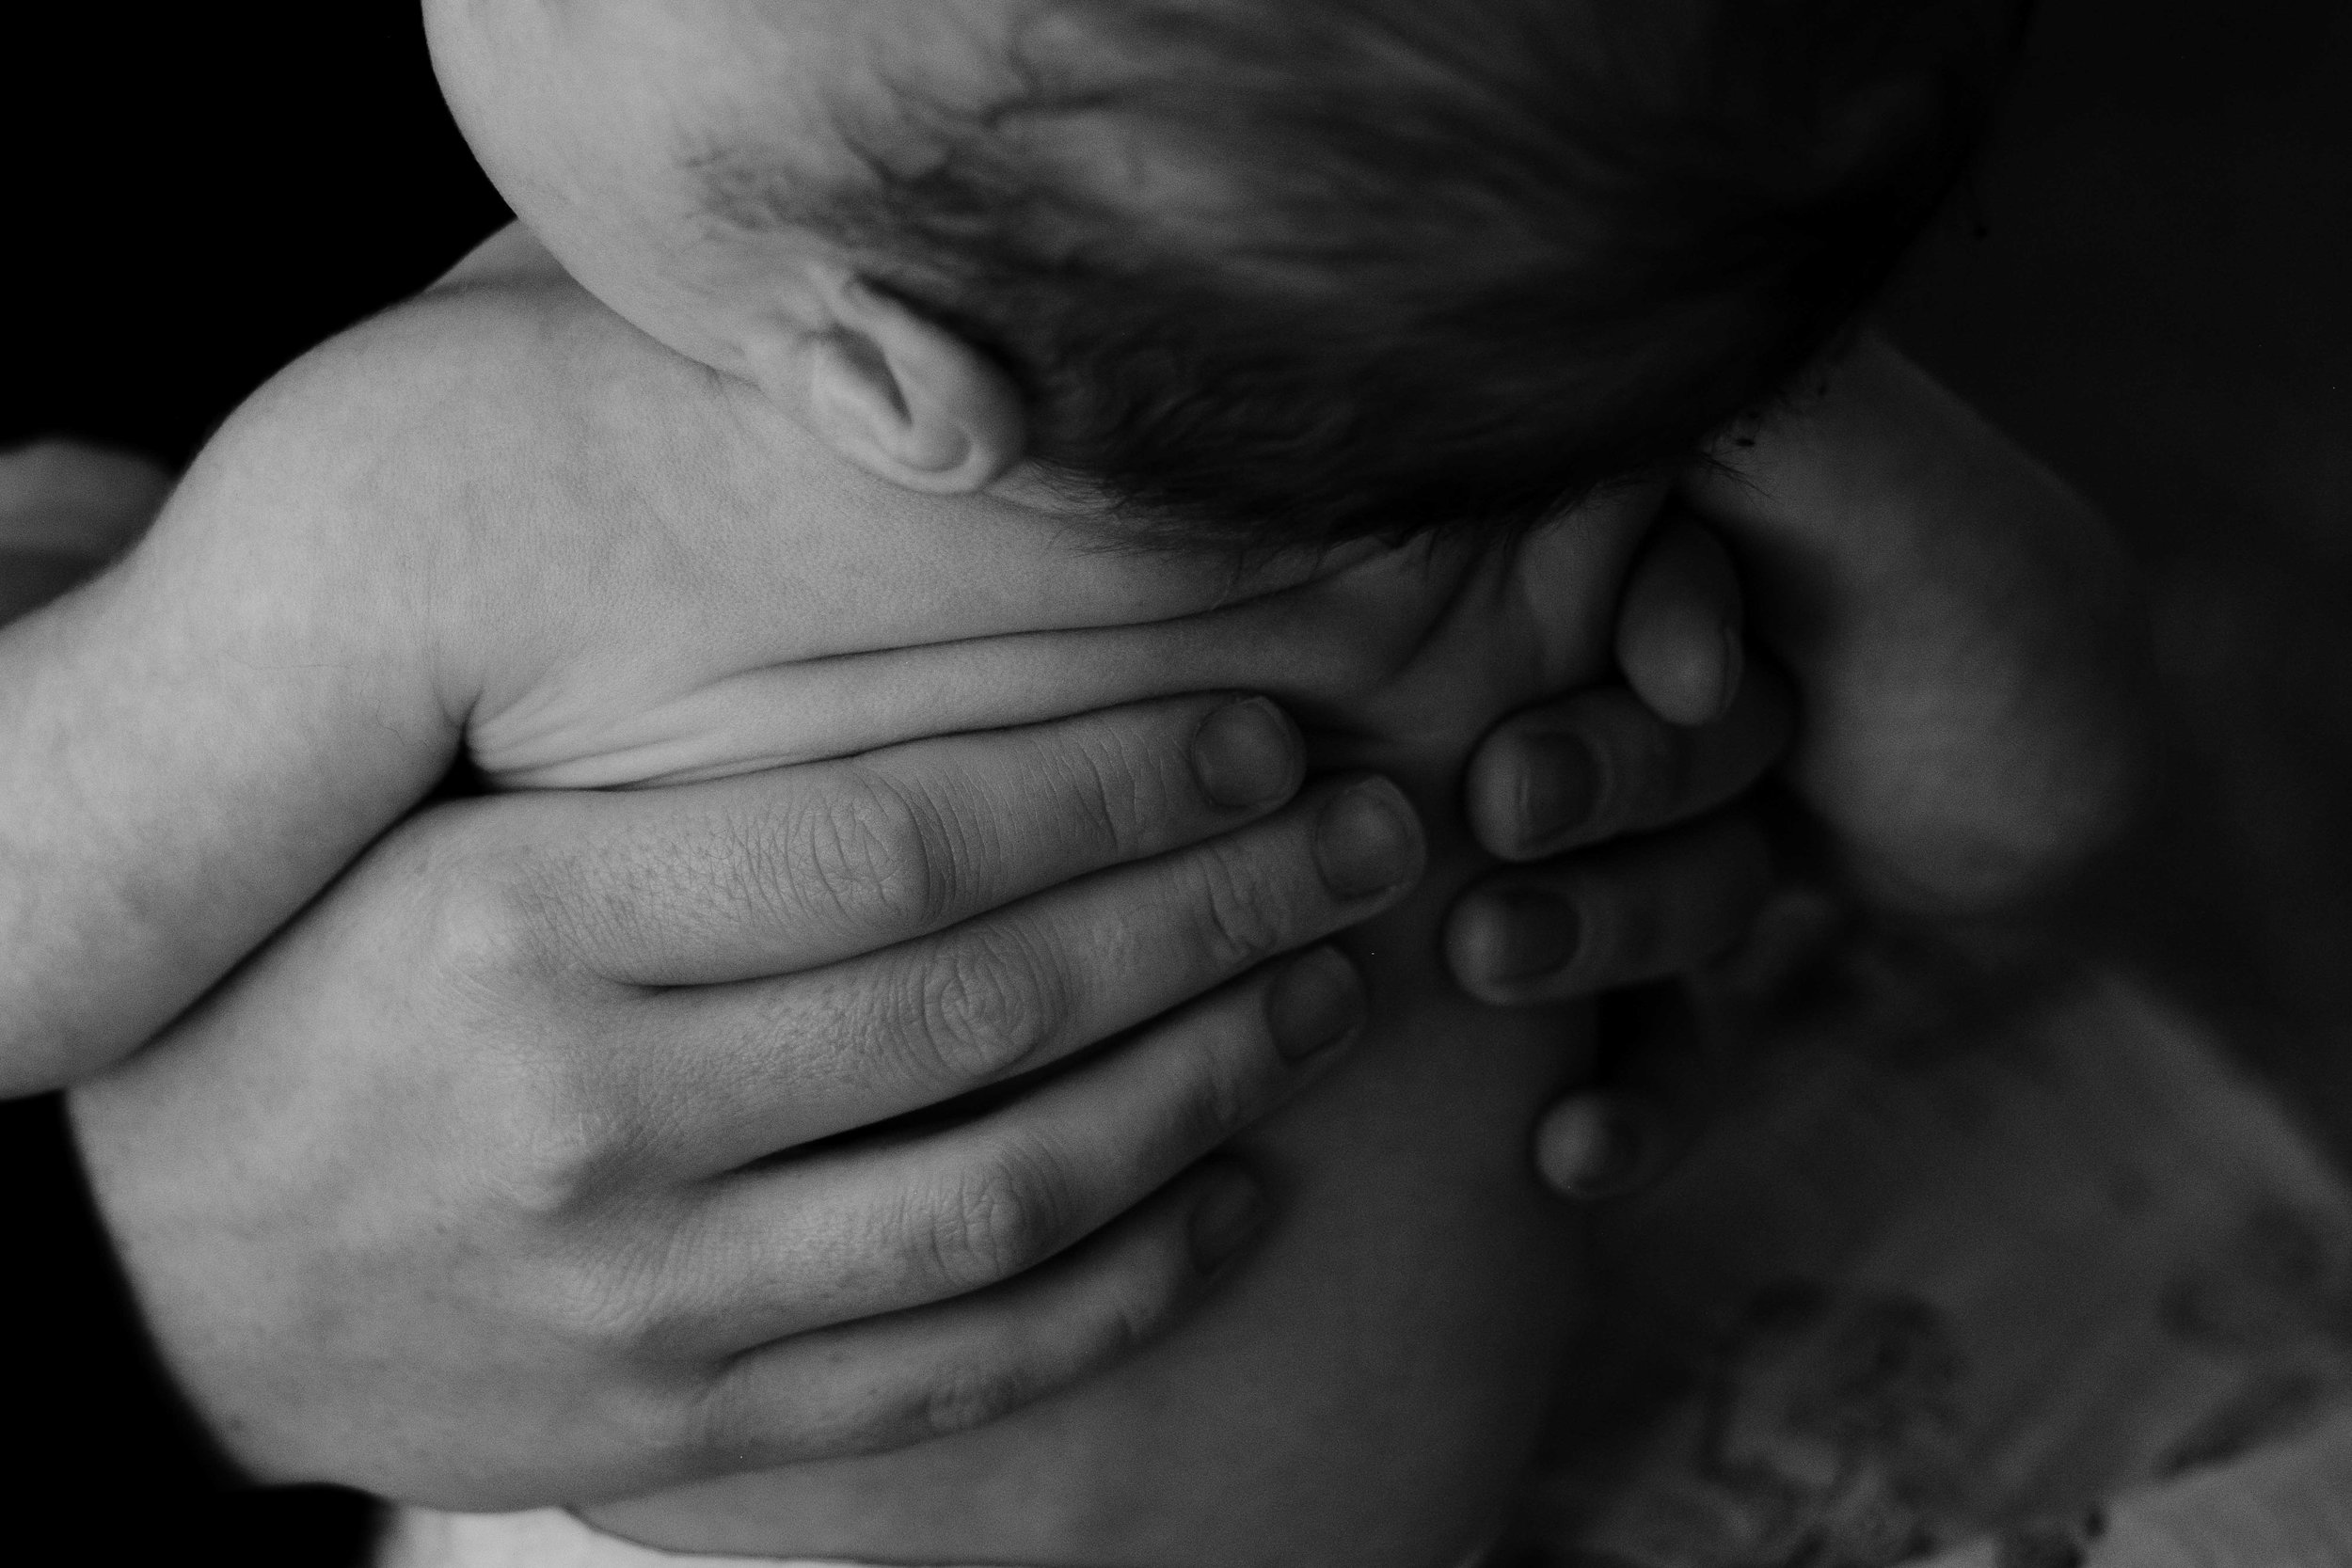 A close up photo of a mother's hand which is holding her small child